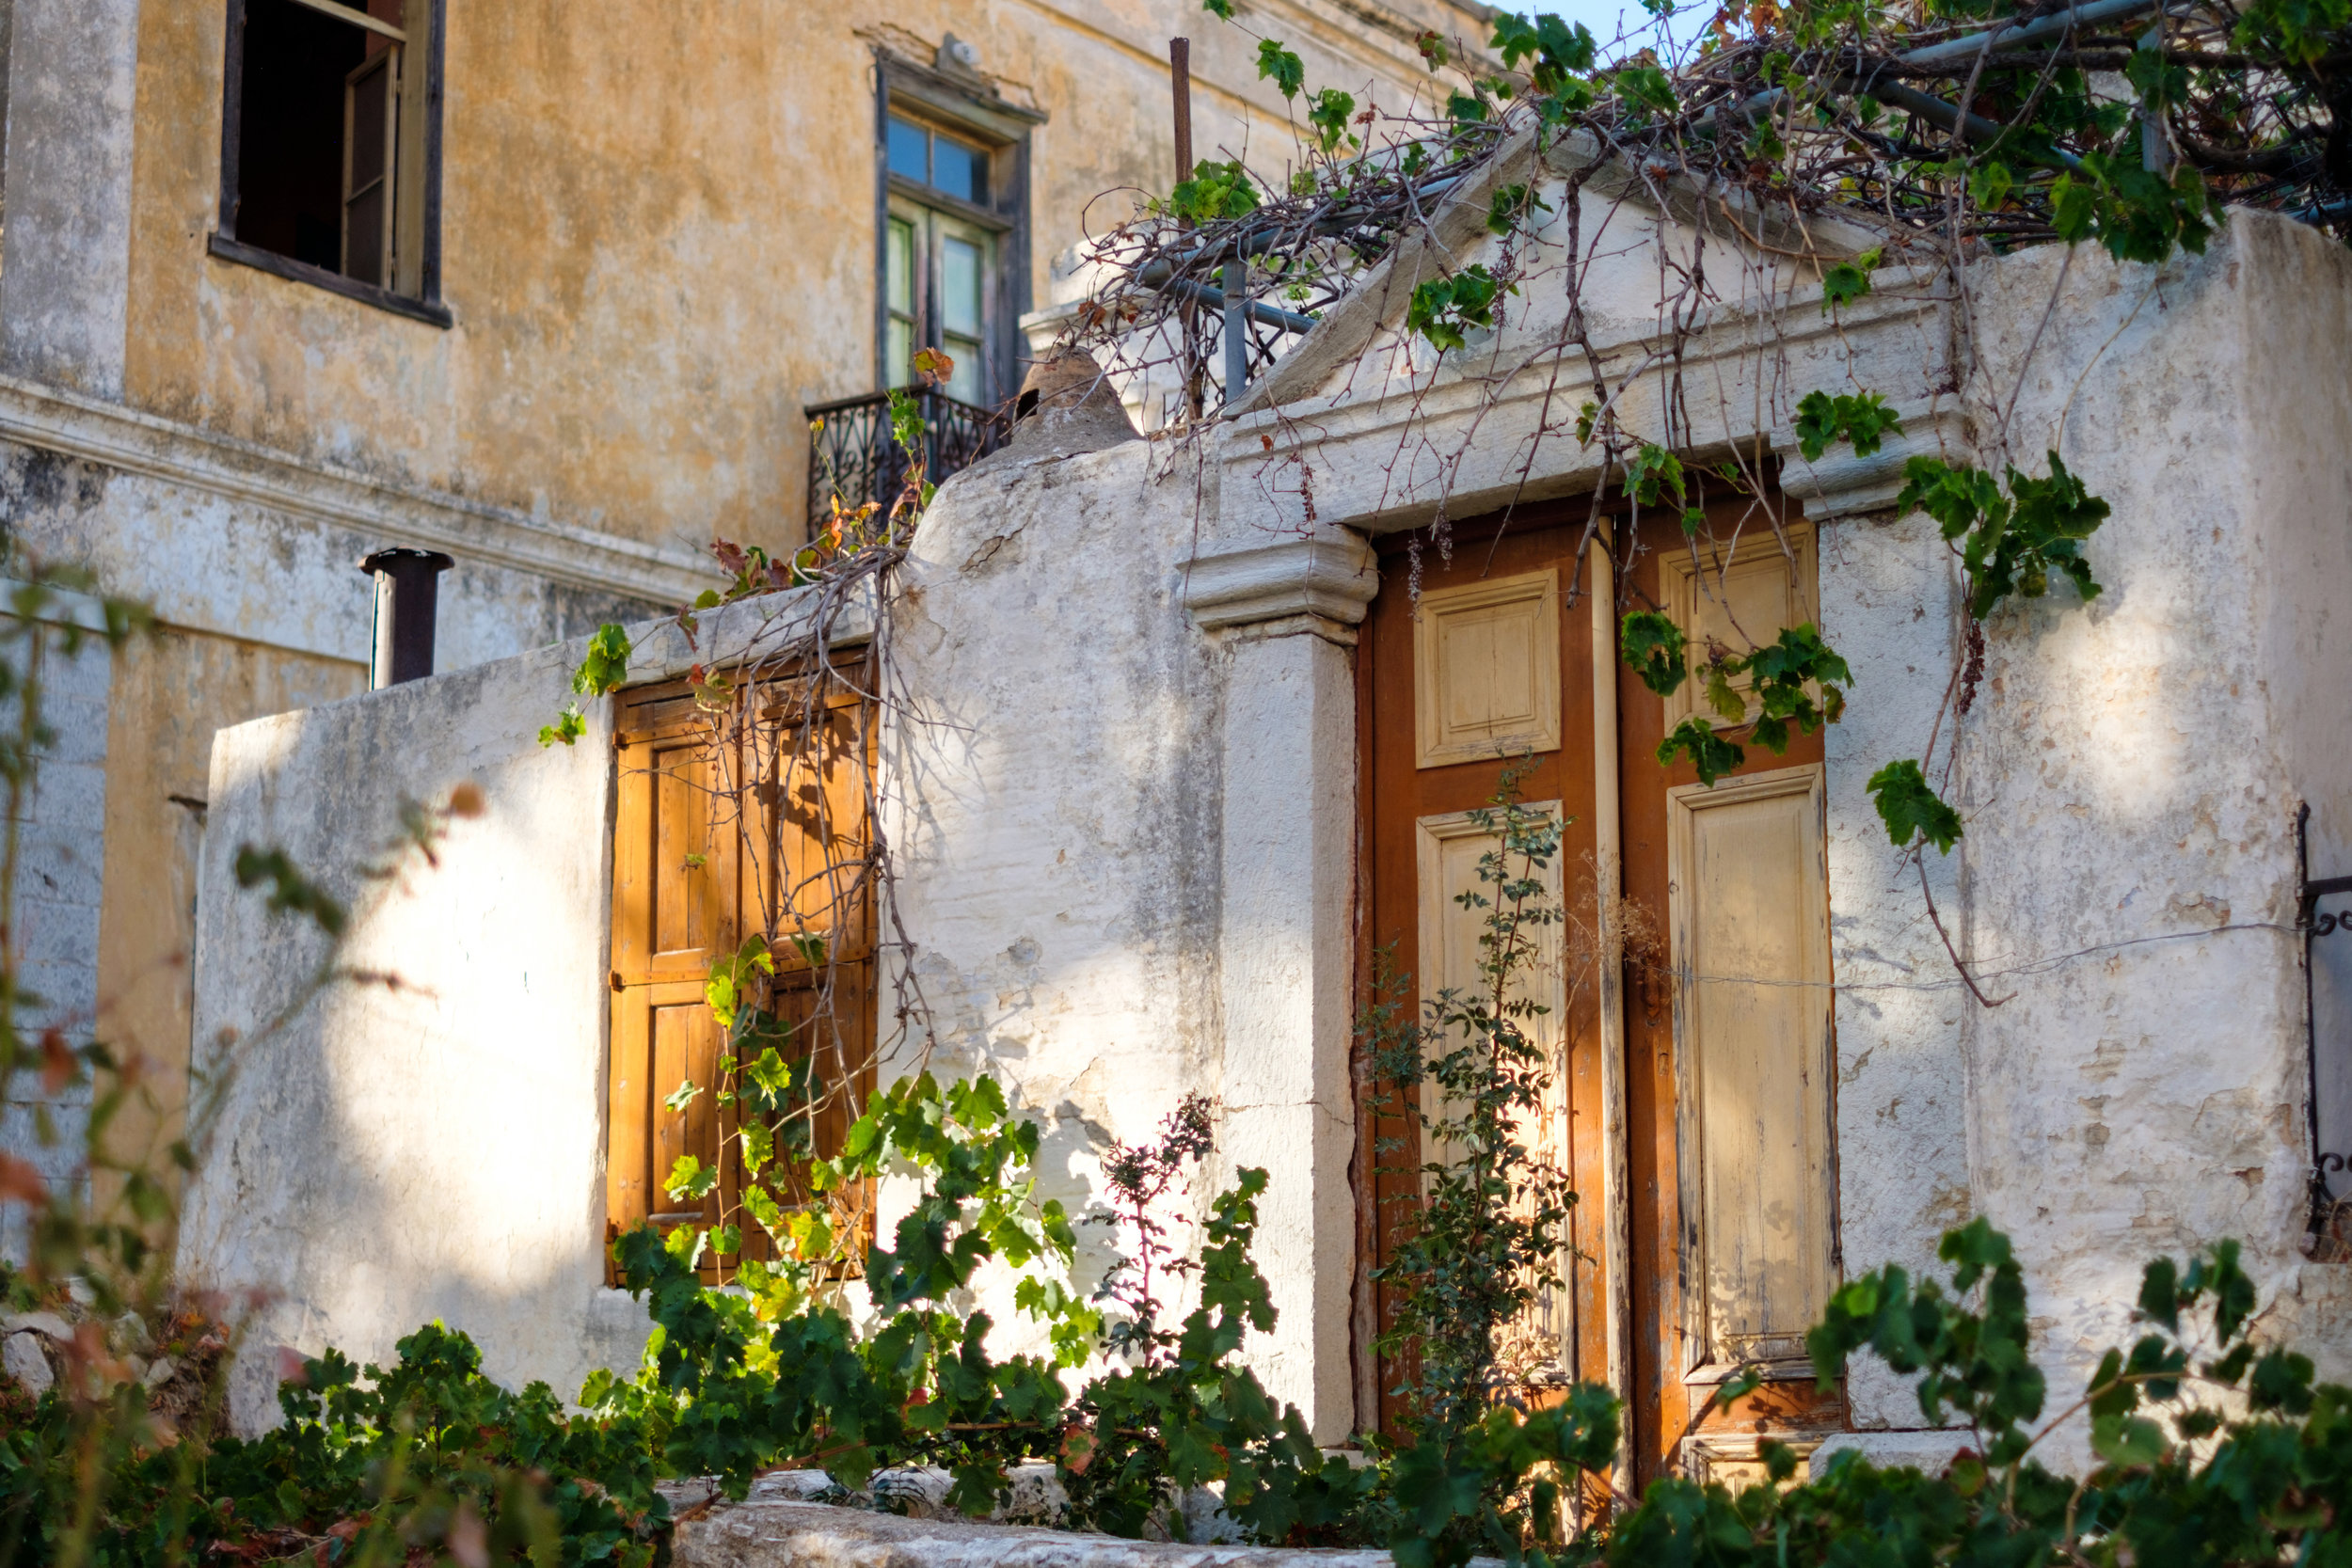 A front door with flowers entering a home in Symi Greece